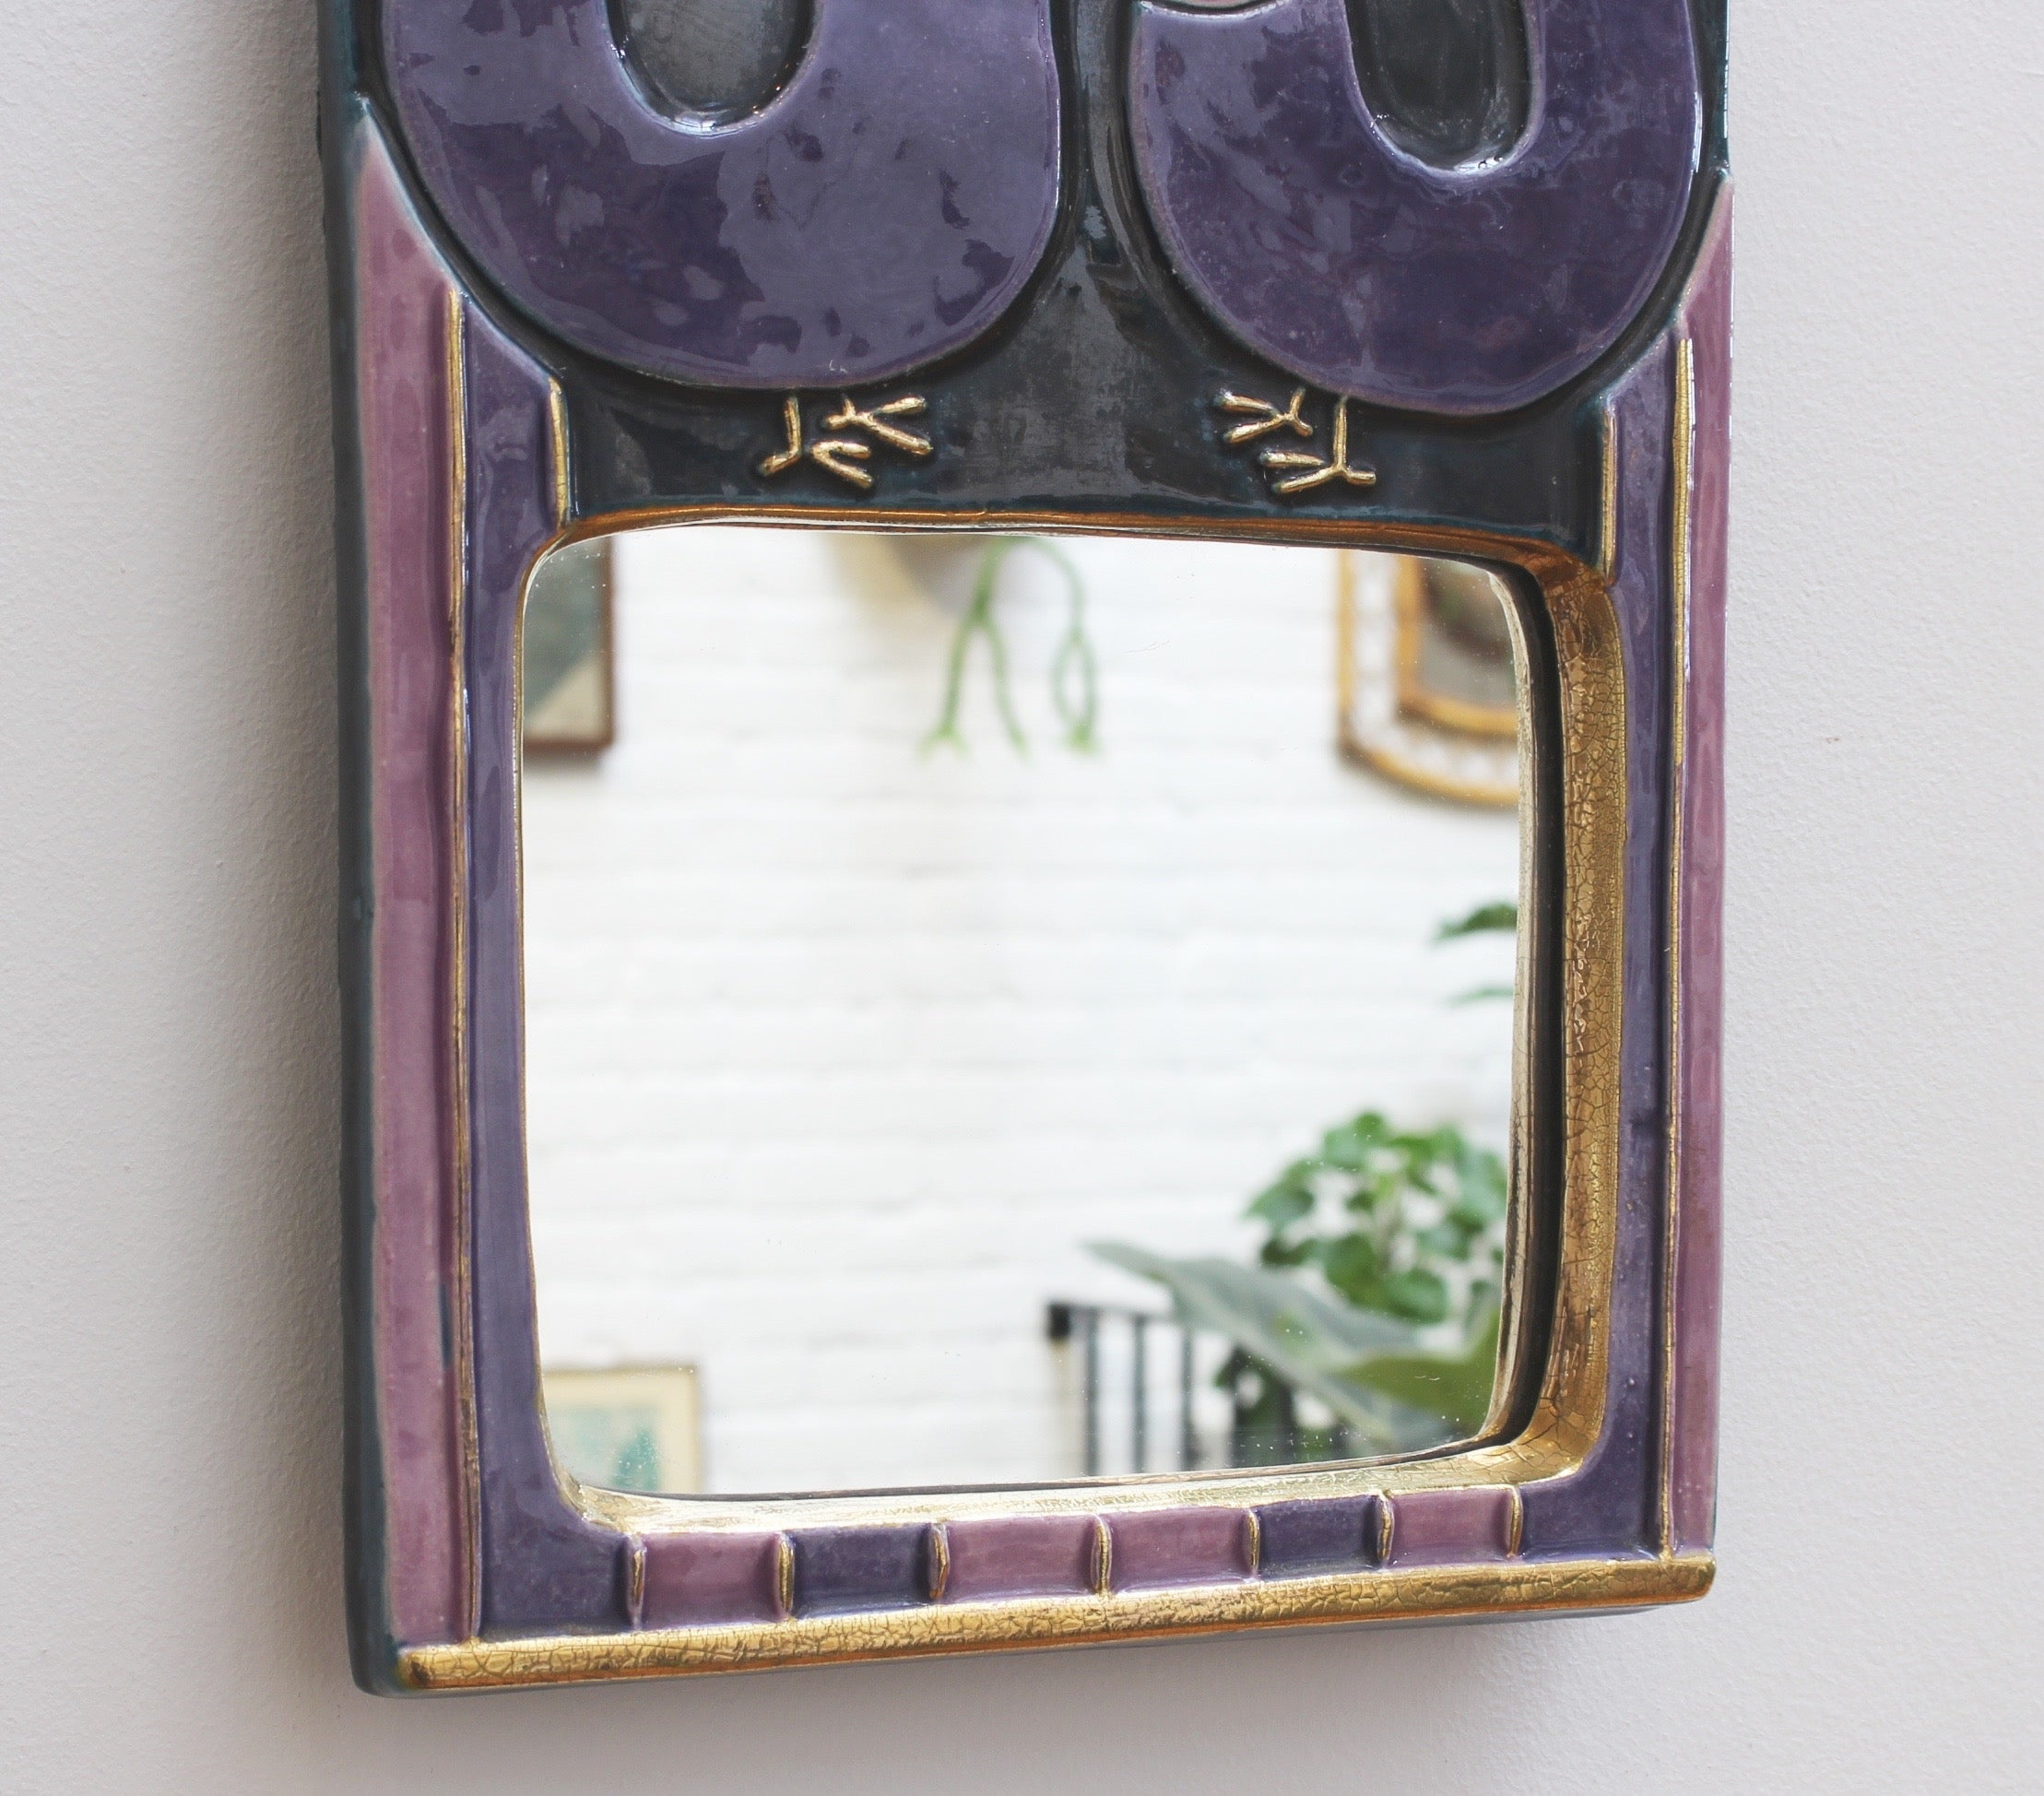 Decorative Ceramic Wall Mirror with Stylised Birds by Mithé Espelt (circa 1970s)